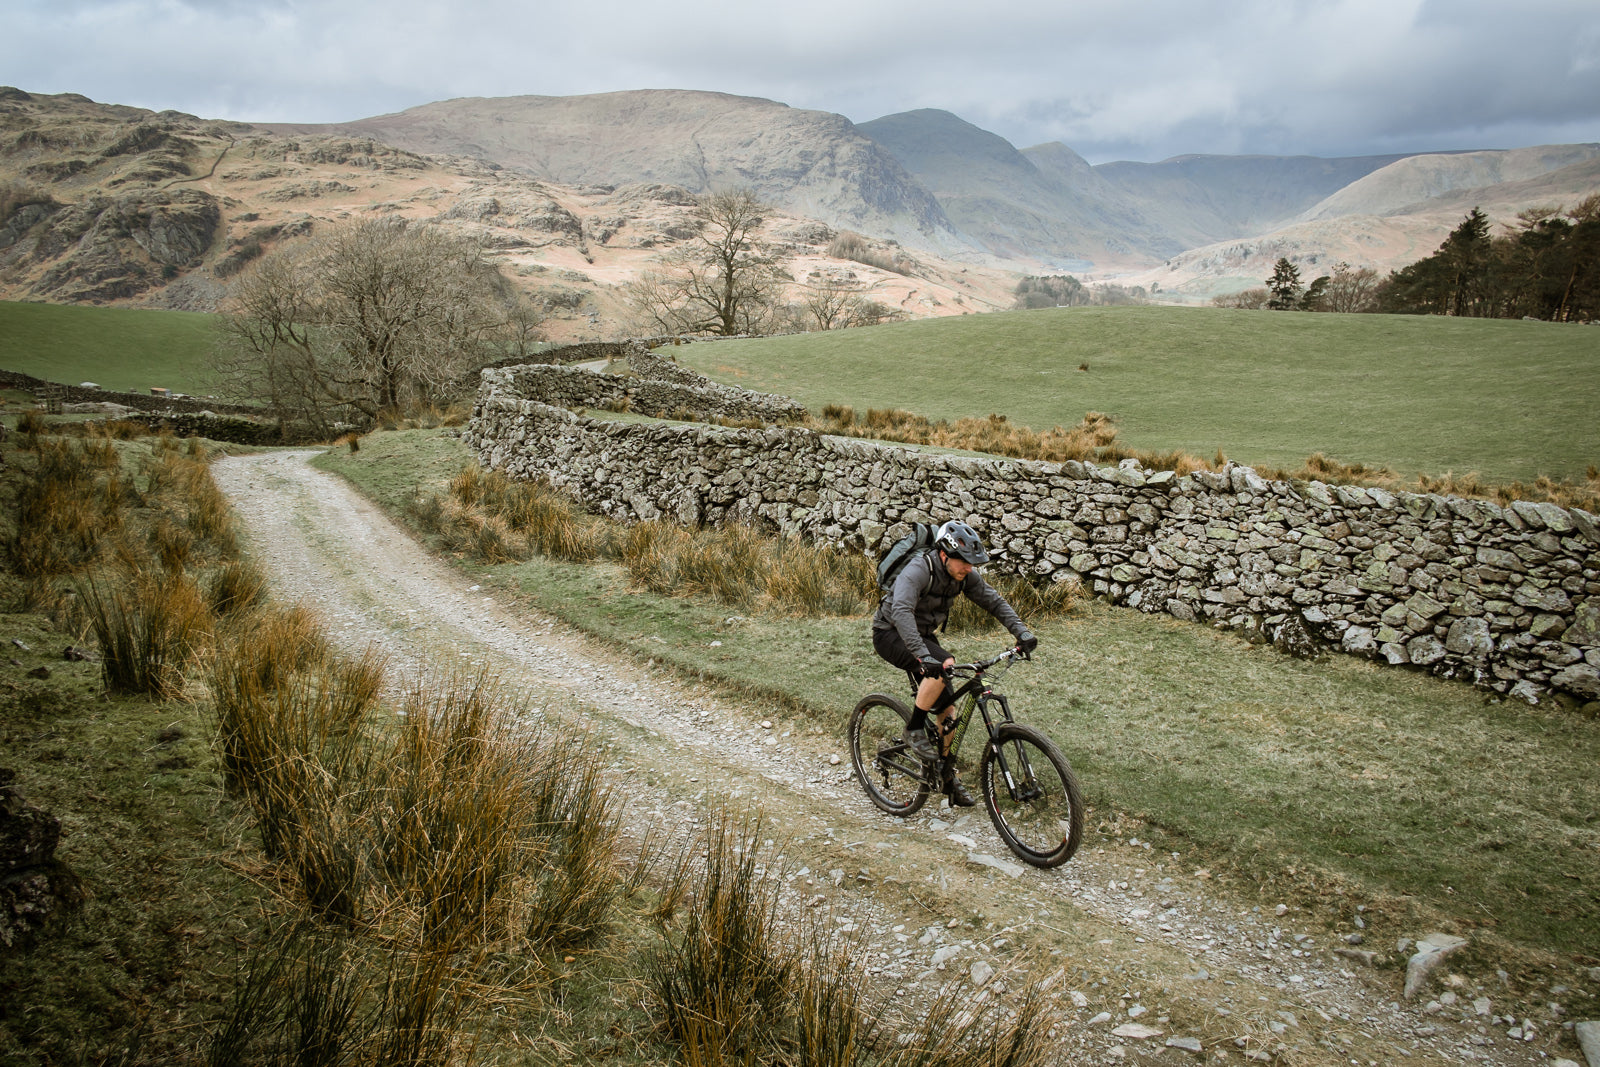 Mission Workshop Field Test : Riding Lake District. Spring 2014 - the English Lake District - Featuring Andy Waterman, Stif Cycles, Santa Cruz Bicycles, Sram.